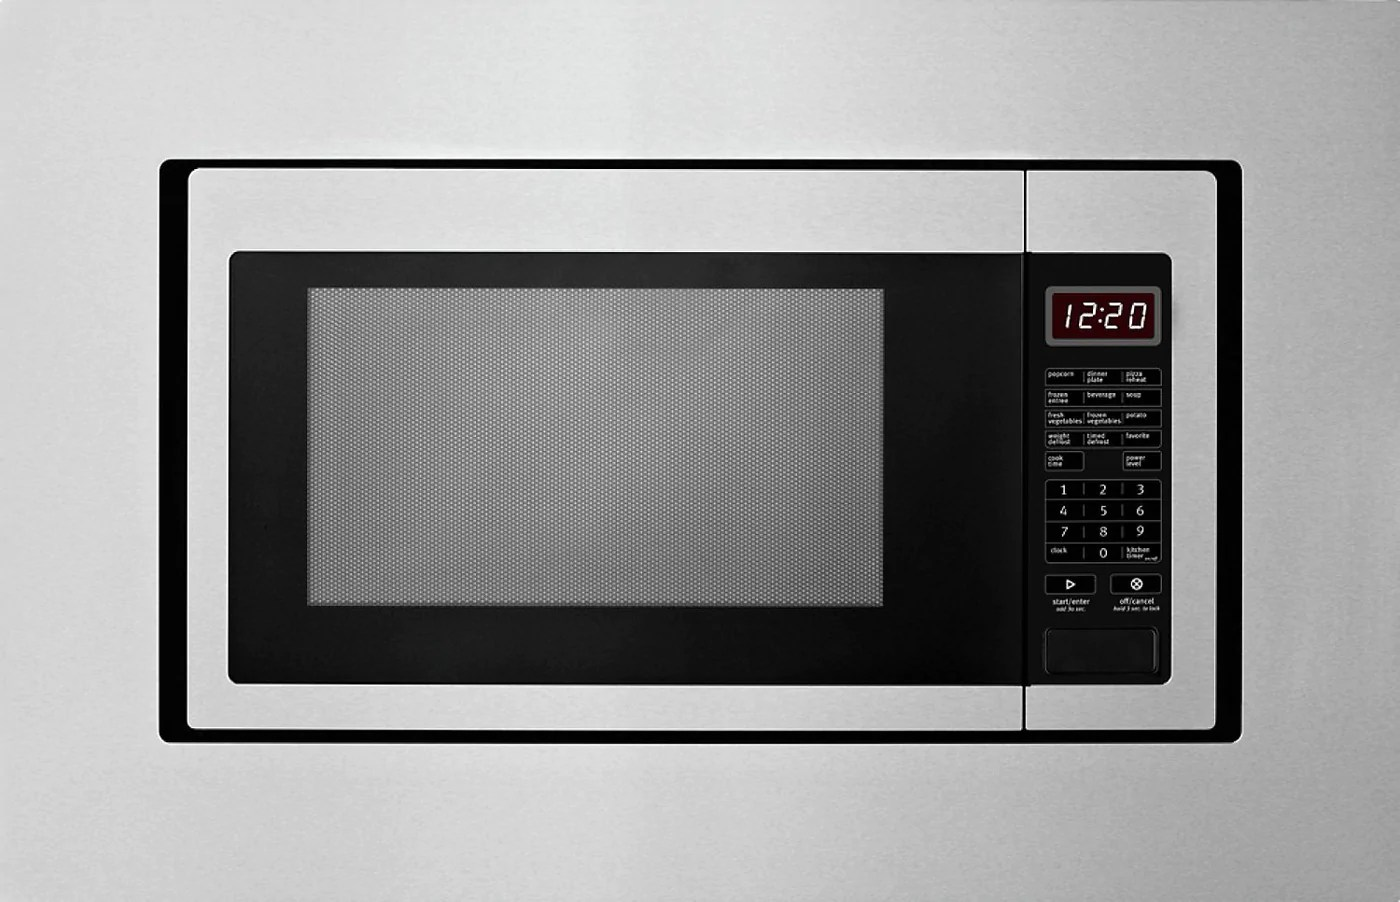 whirlpool 27 trim kit for 1 6 cu ft countertop microwave oven mk2167as